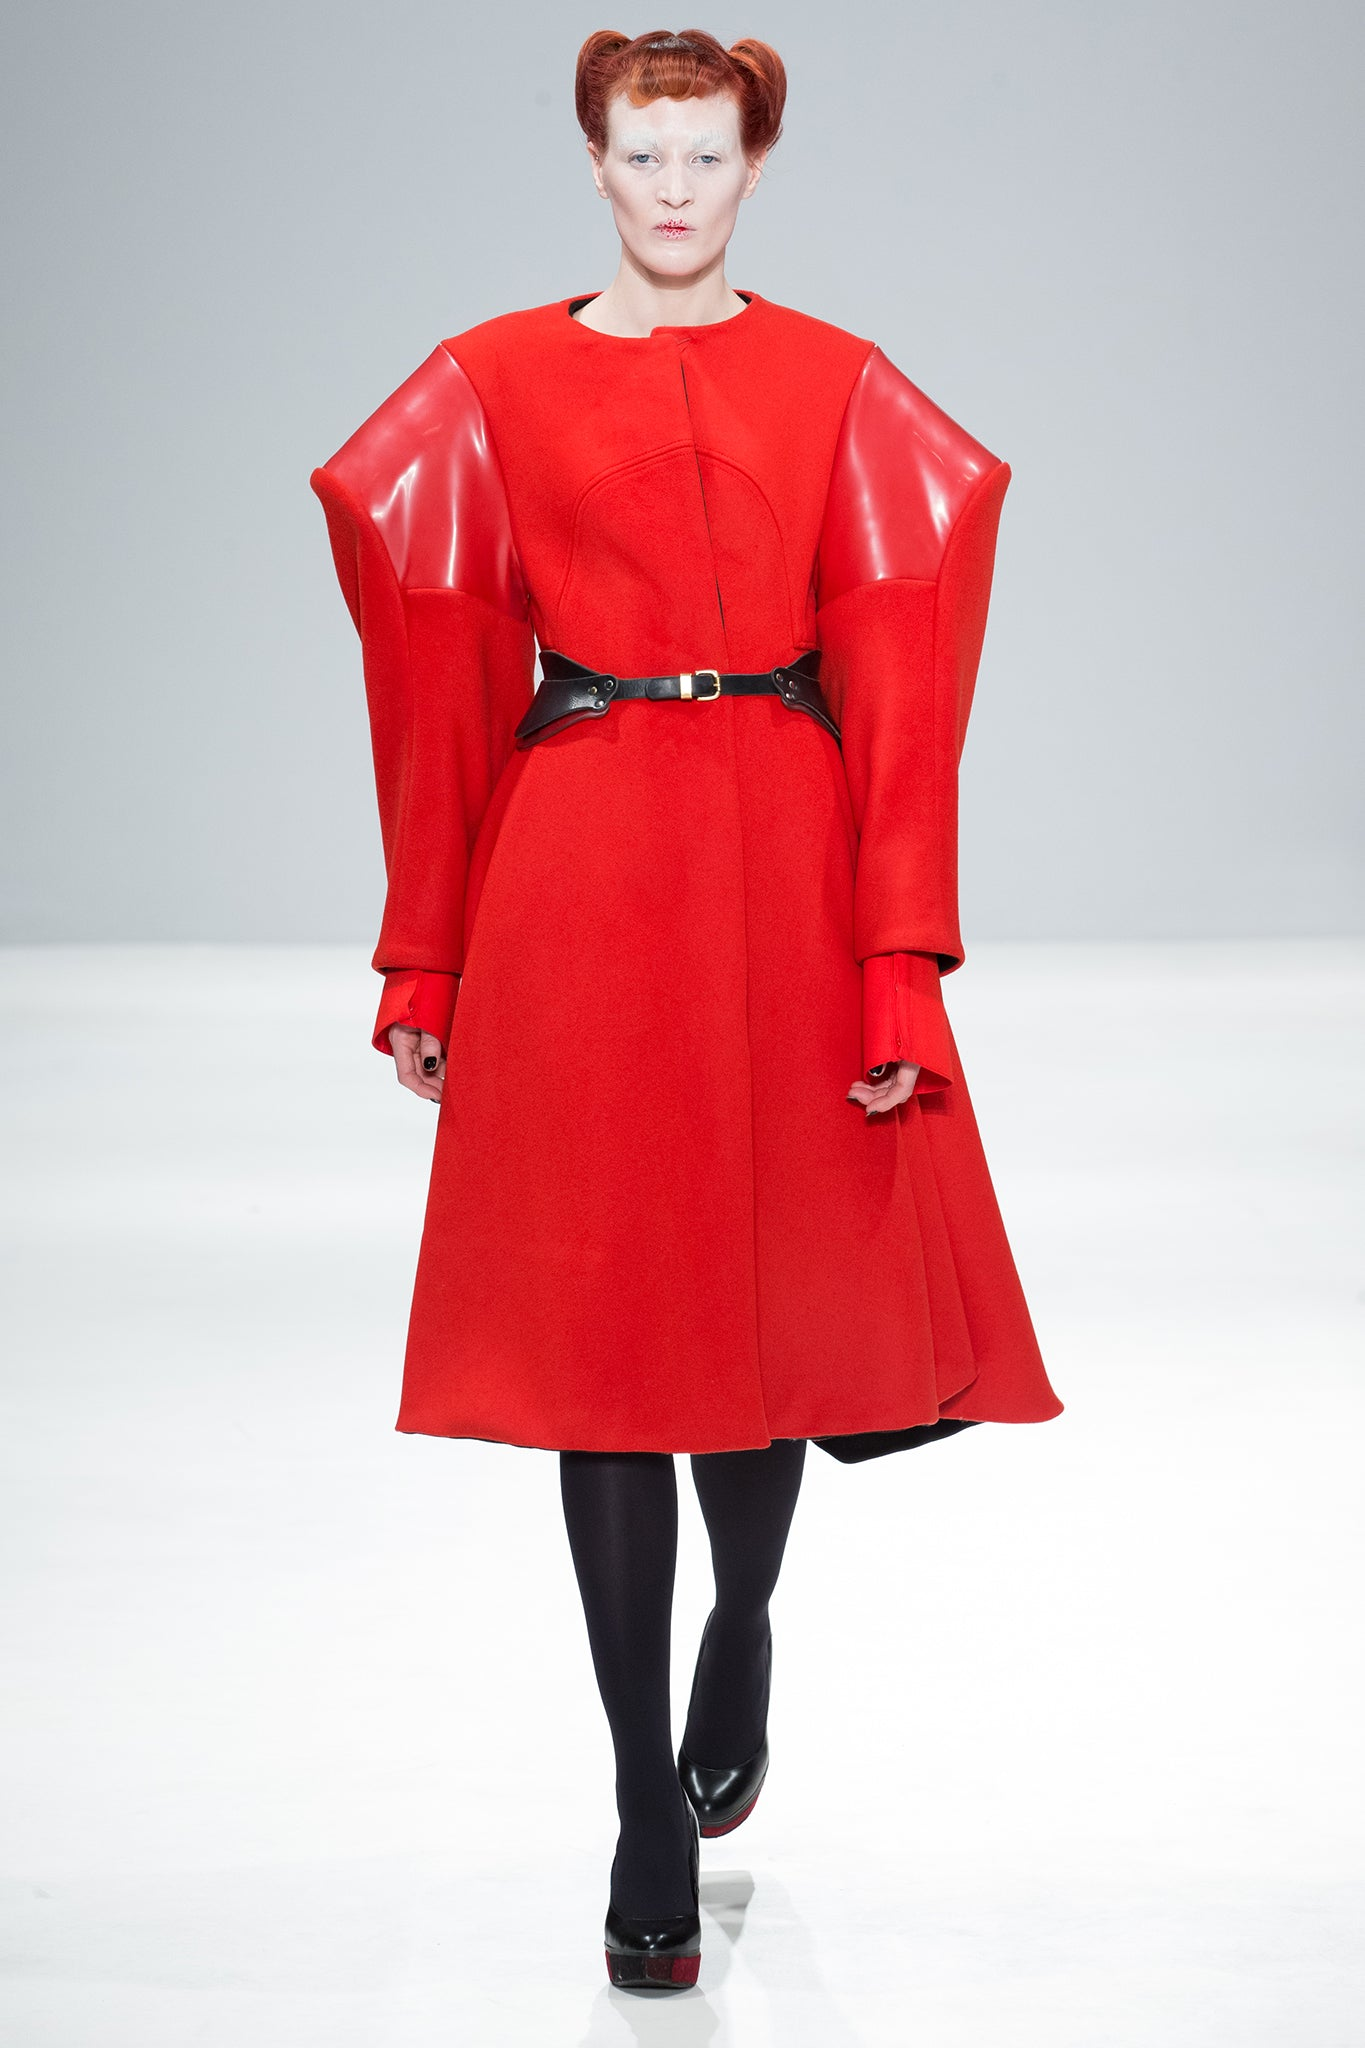 CIMONE's 'Broad' coat with red wool and PVC accents. a signature style for AW17-18, first shown on the fashion scout catwalk at London Fashion Week.